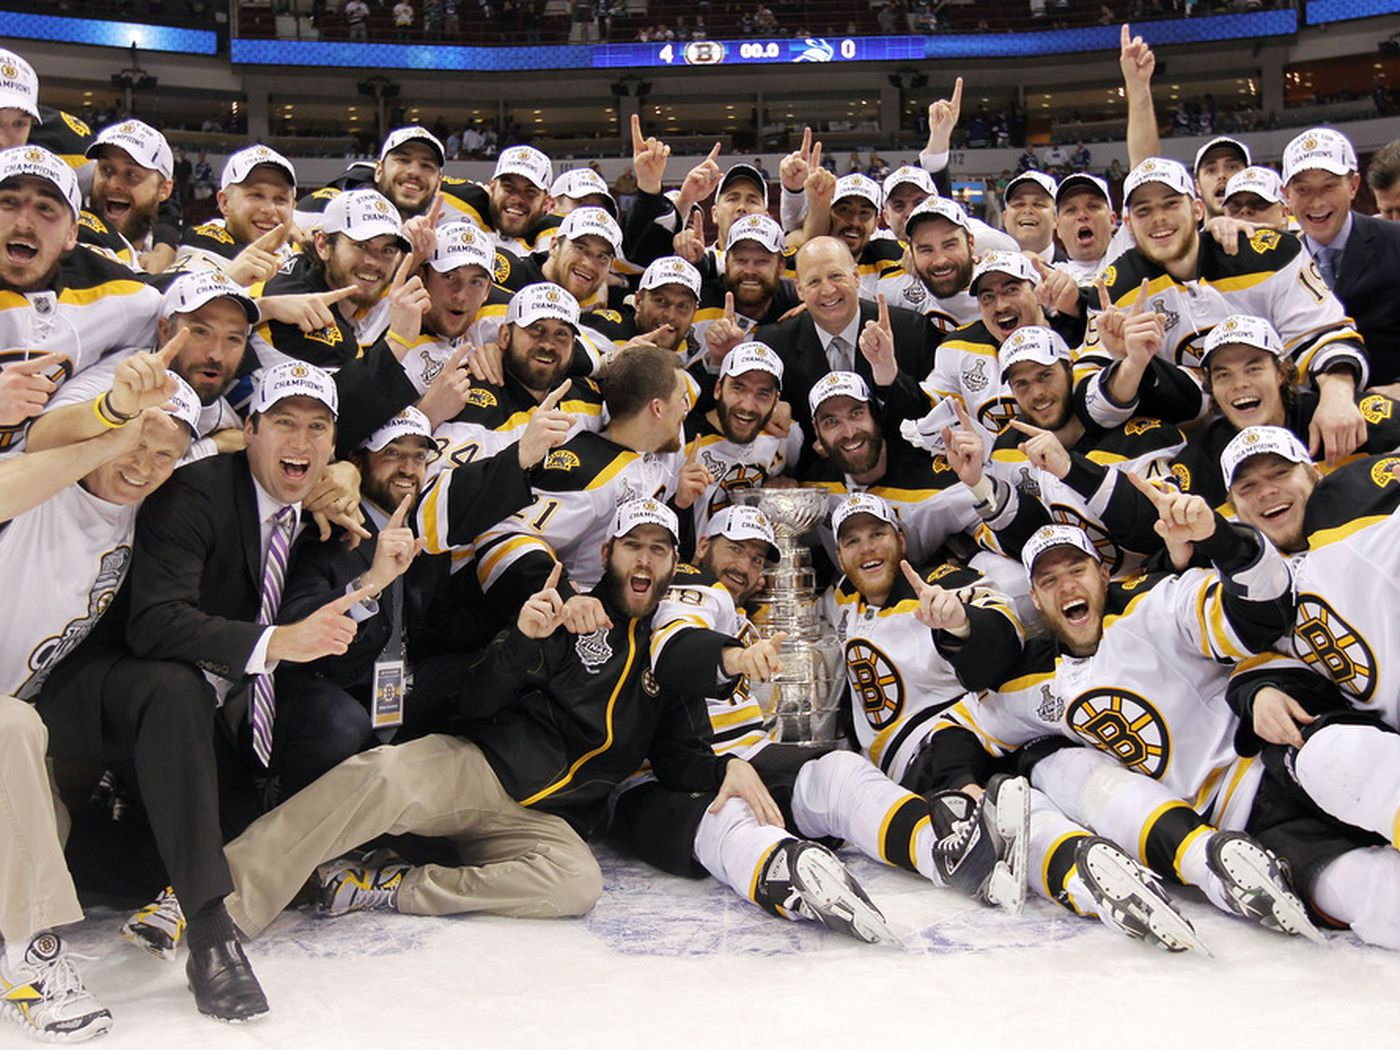 90b7172362c We GOT The Cup!  Bruins clinch Stanley Cup with 4-0 win over Canucks - Stanley  Cup of Chowder